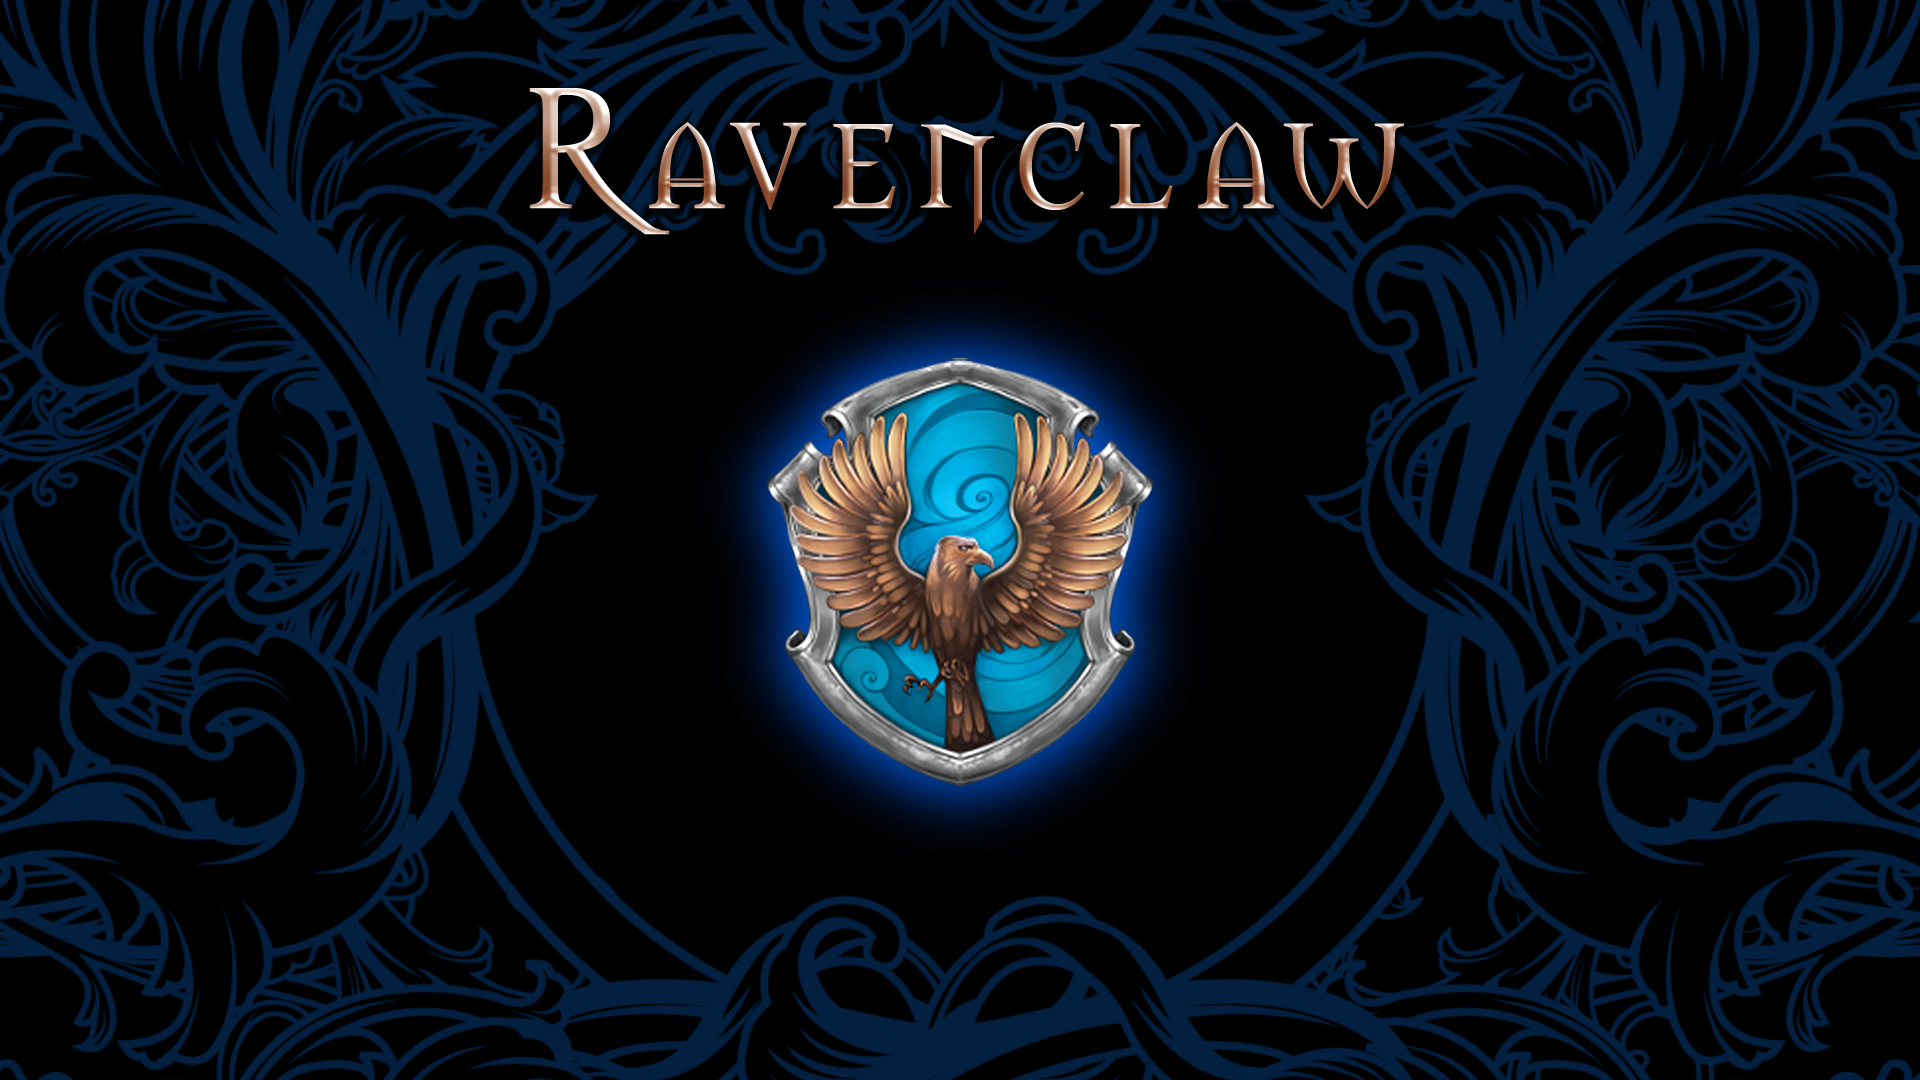 Malkin Woods Ravenclaw Hogwarts Is Here